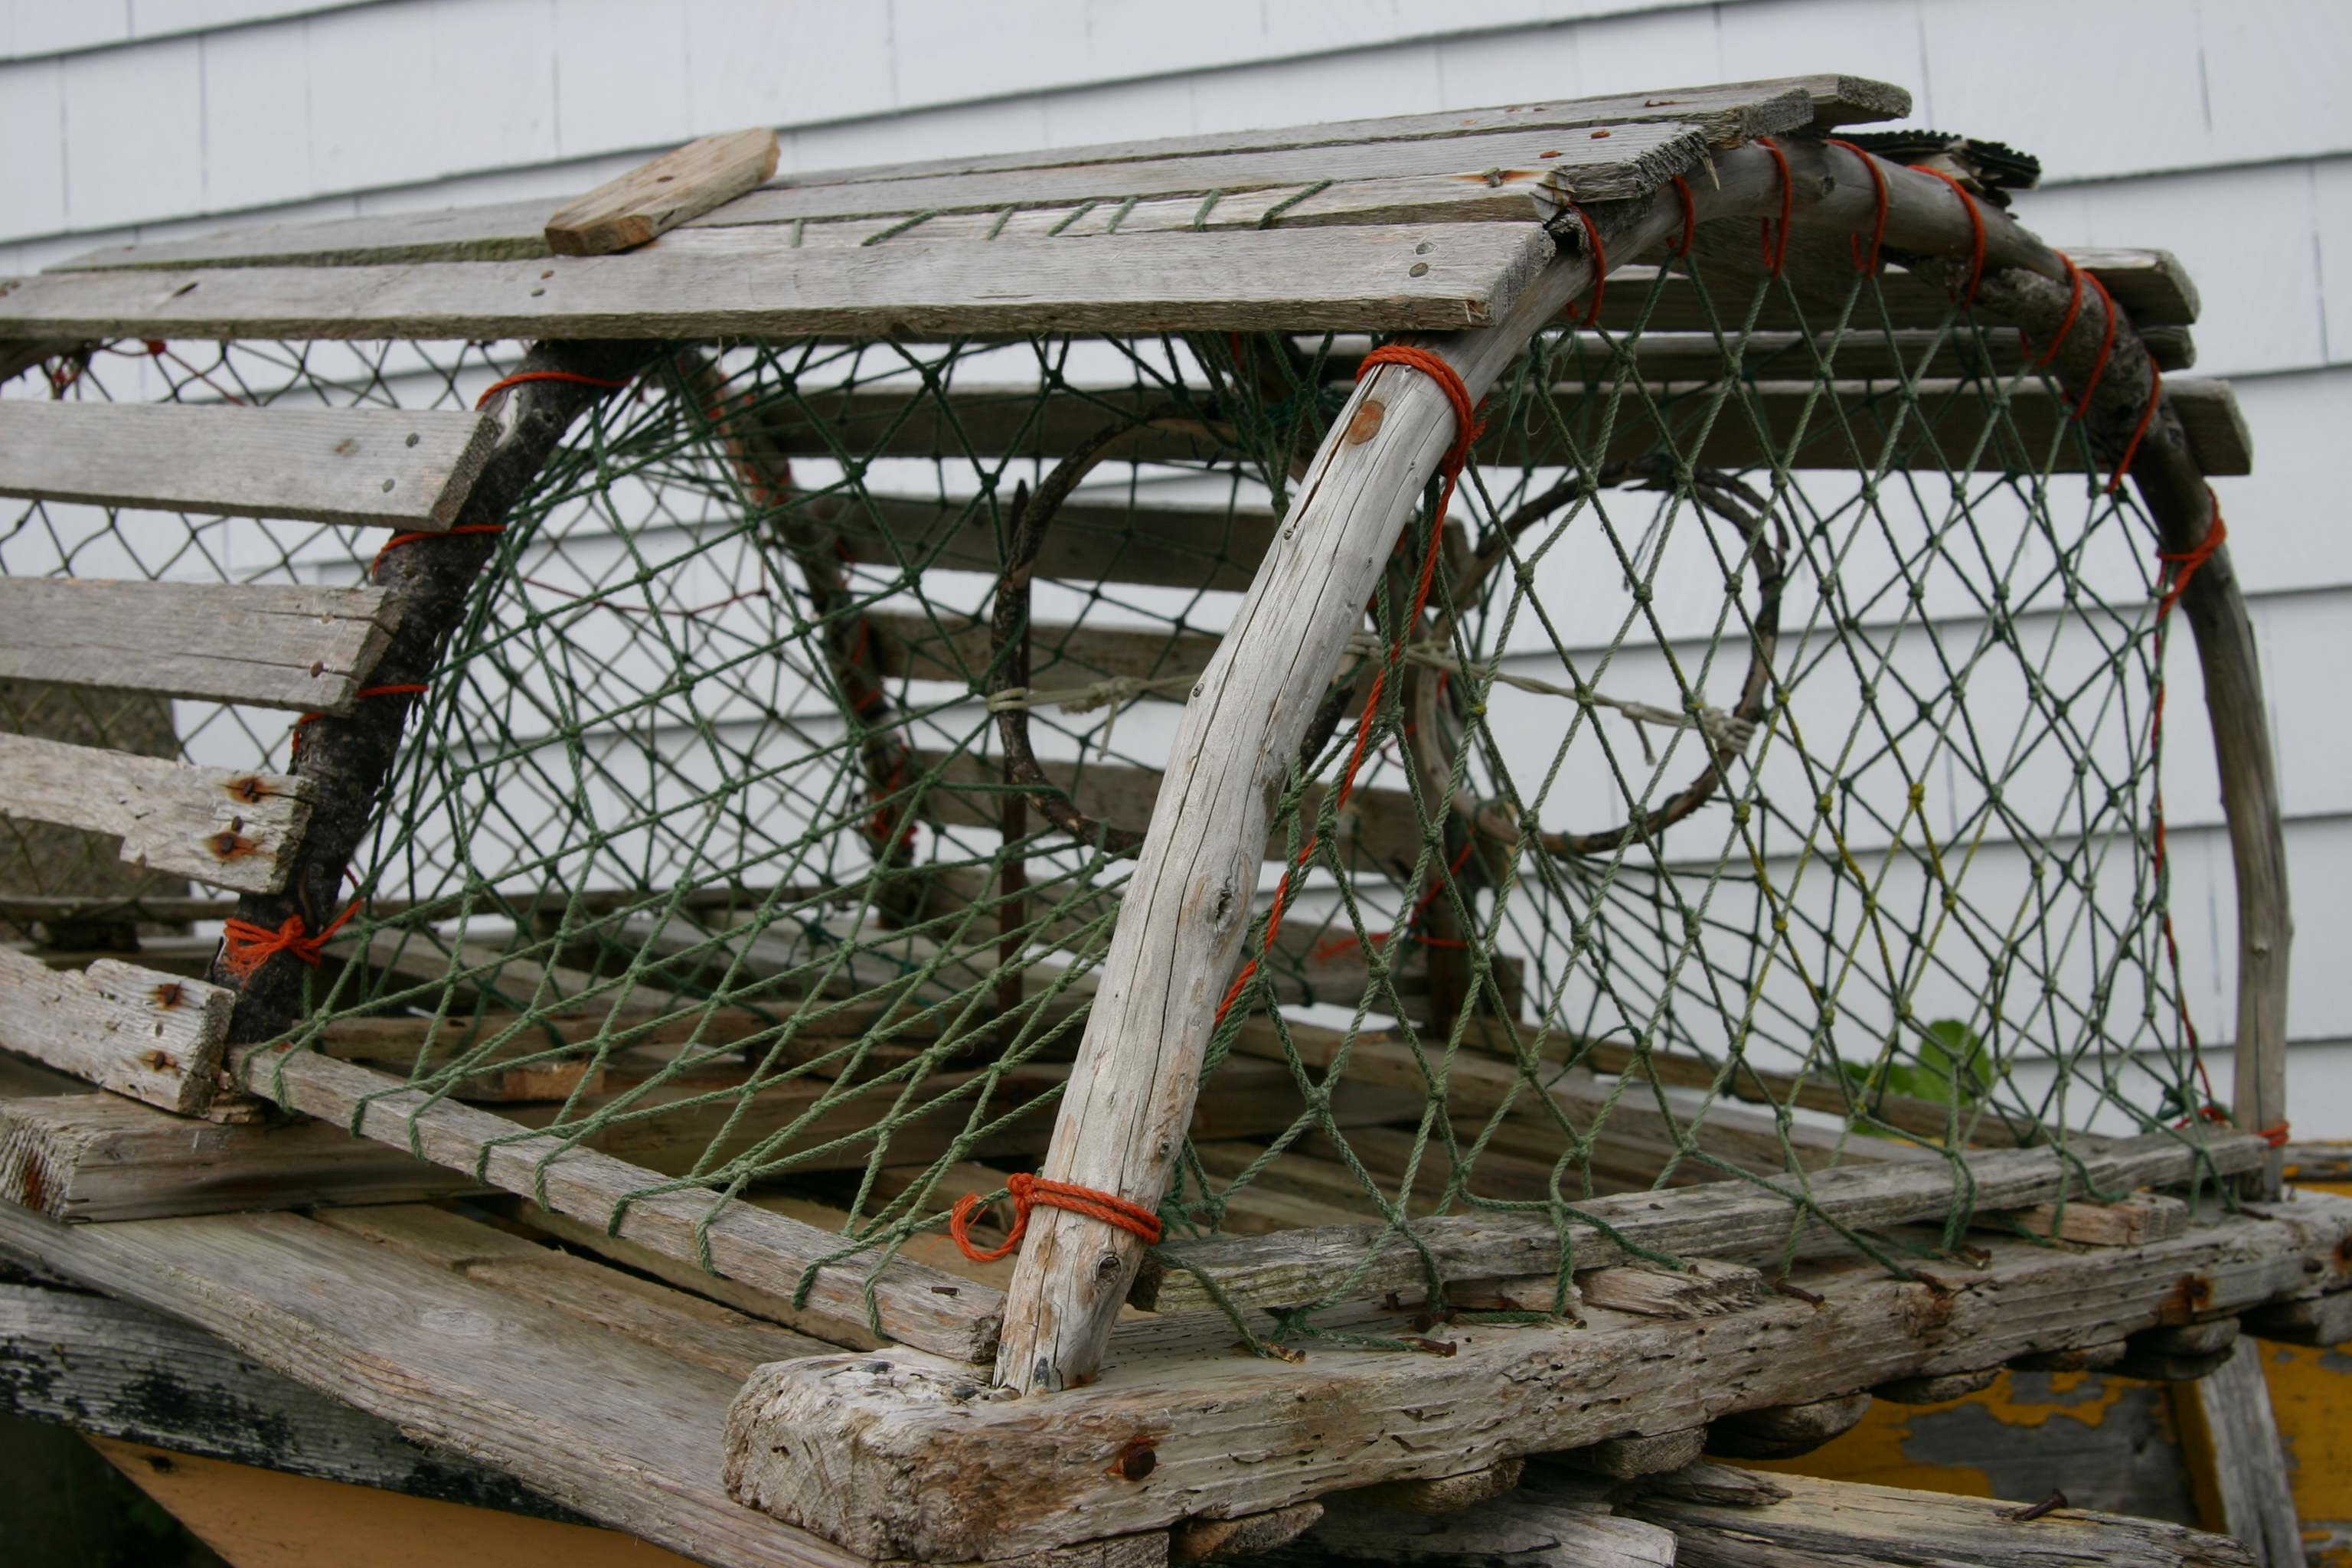 File:Lobster trap.jpg - Wikimedia Commons